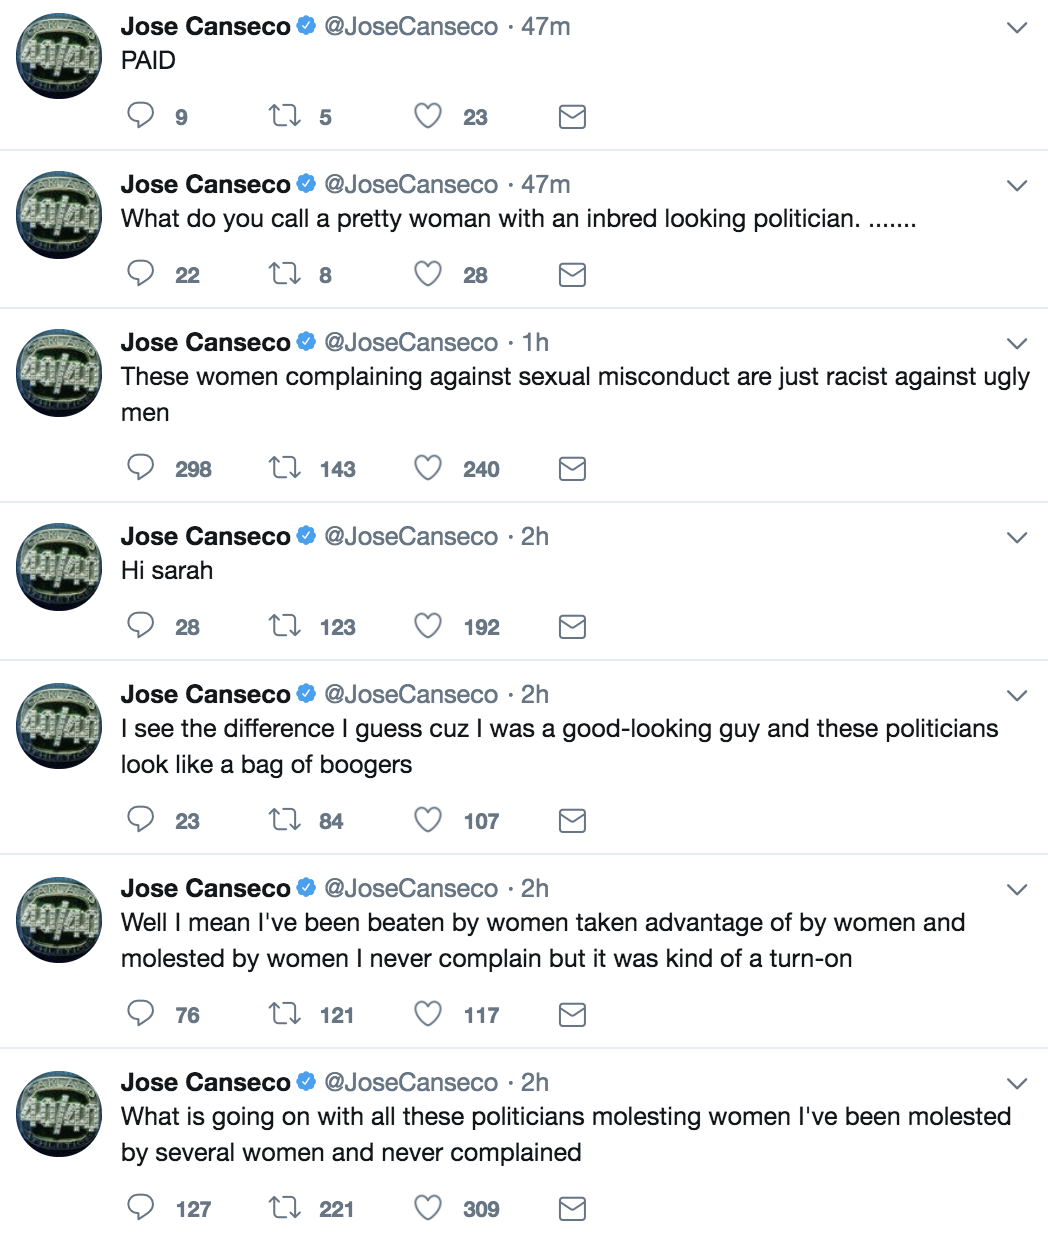 Jose Canseco's tweets could jeopardize job on A's telecasts